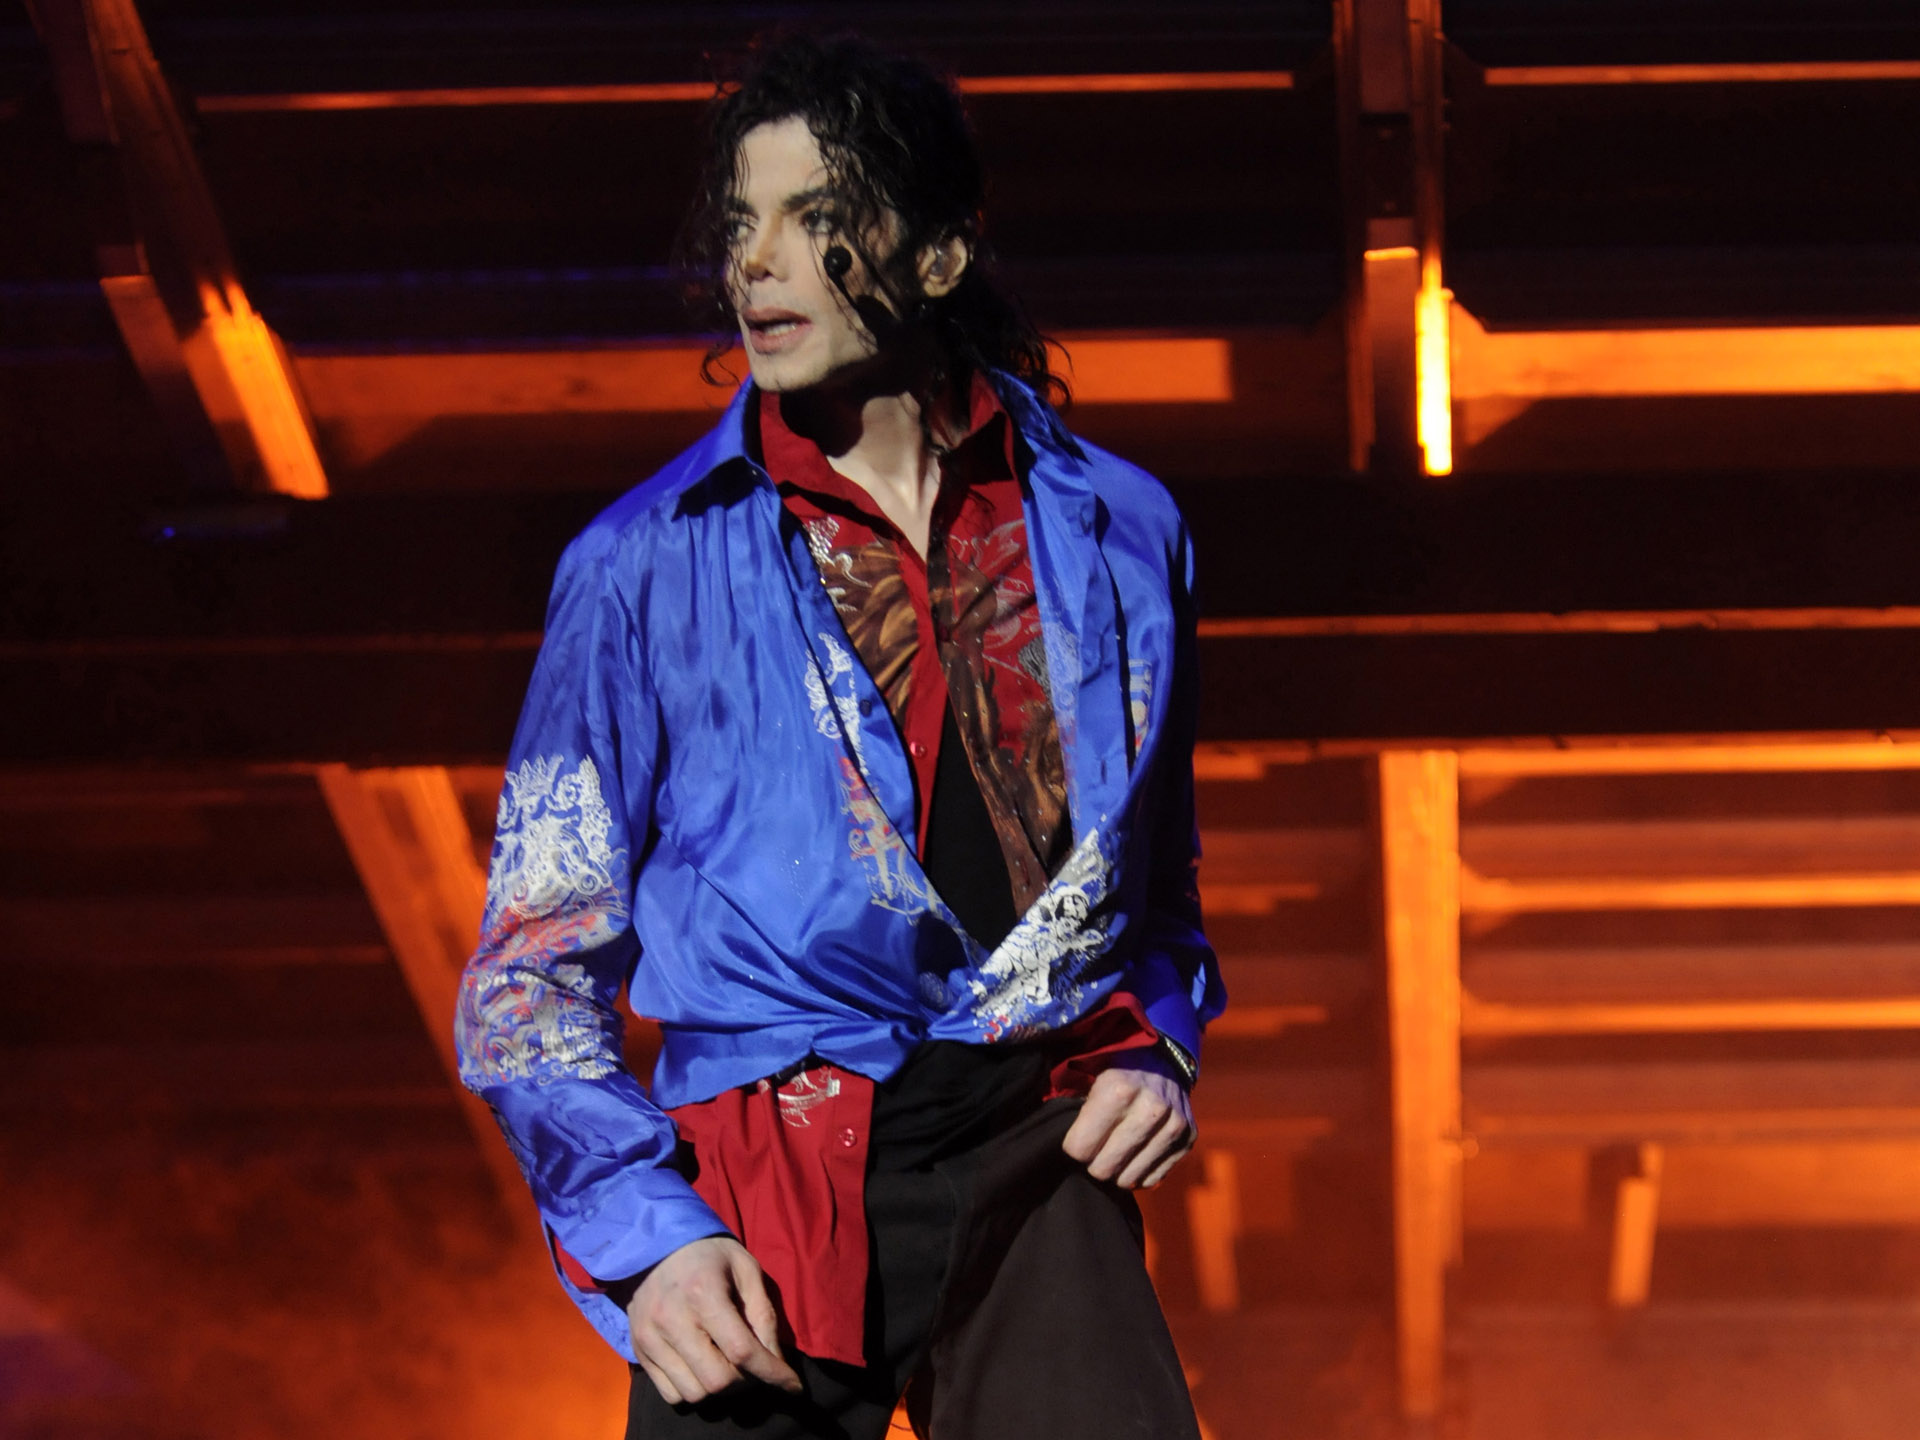 Michael jackson this is it wallpapers